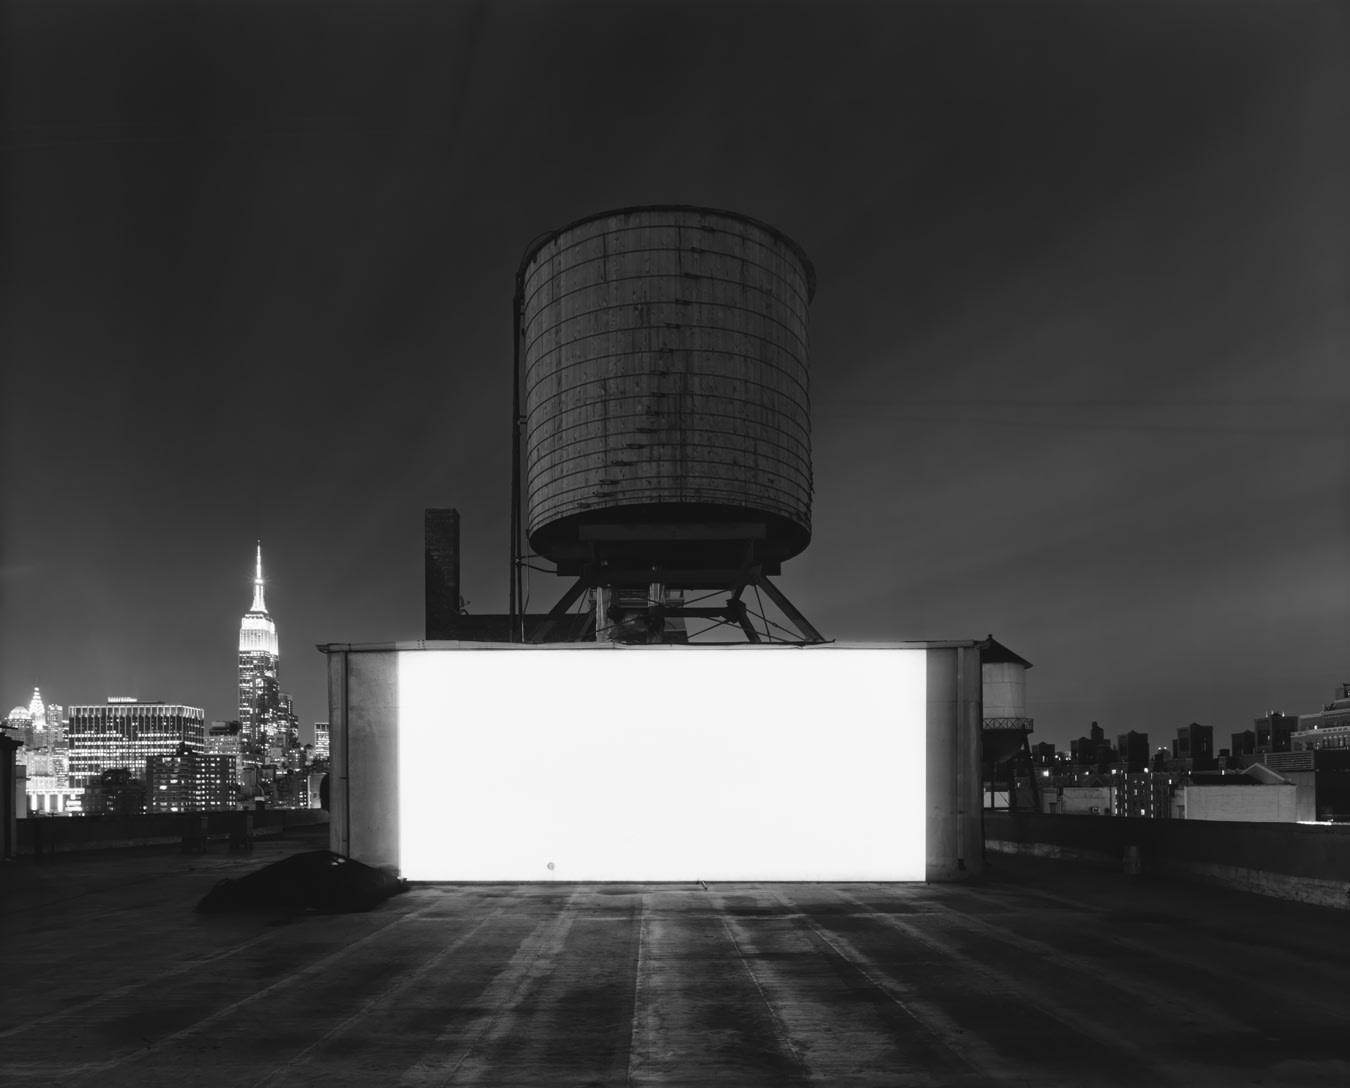 A rectangle of light is projected onto a wall below a water tower. There is a city skyline in the background.